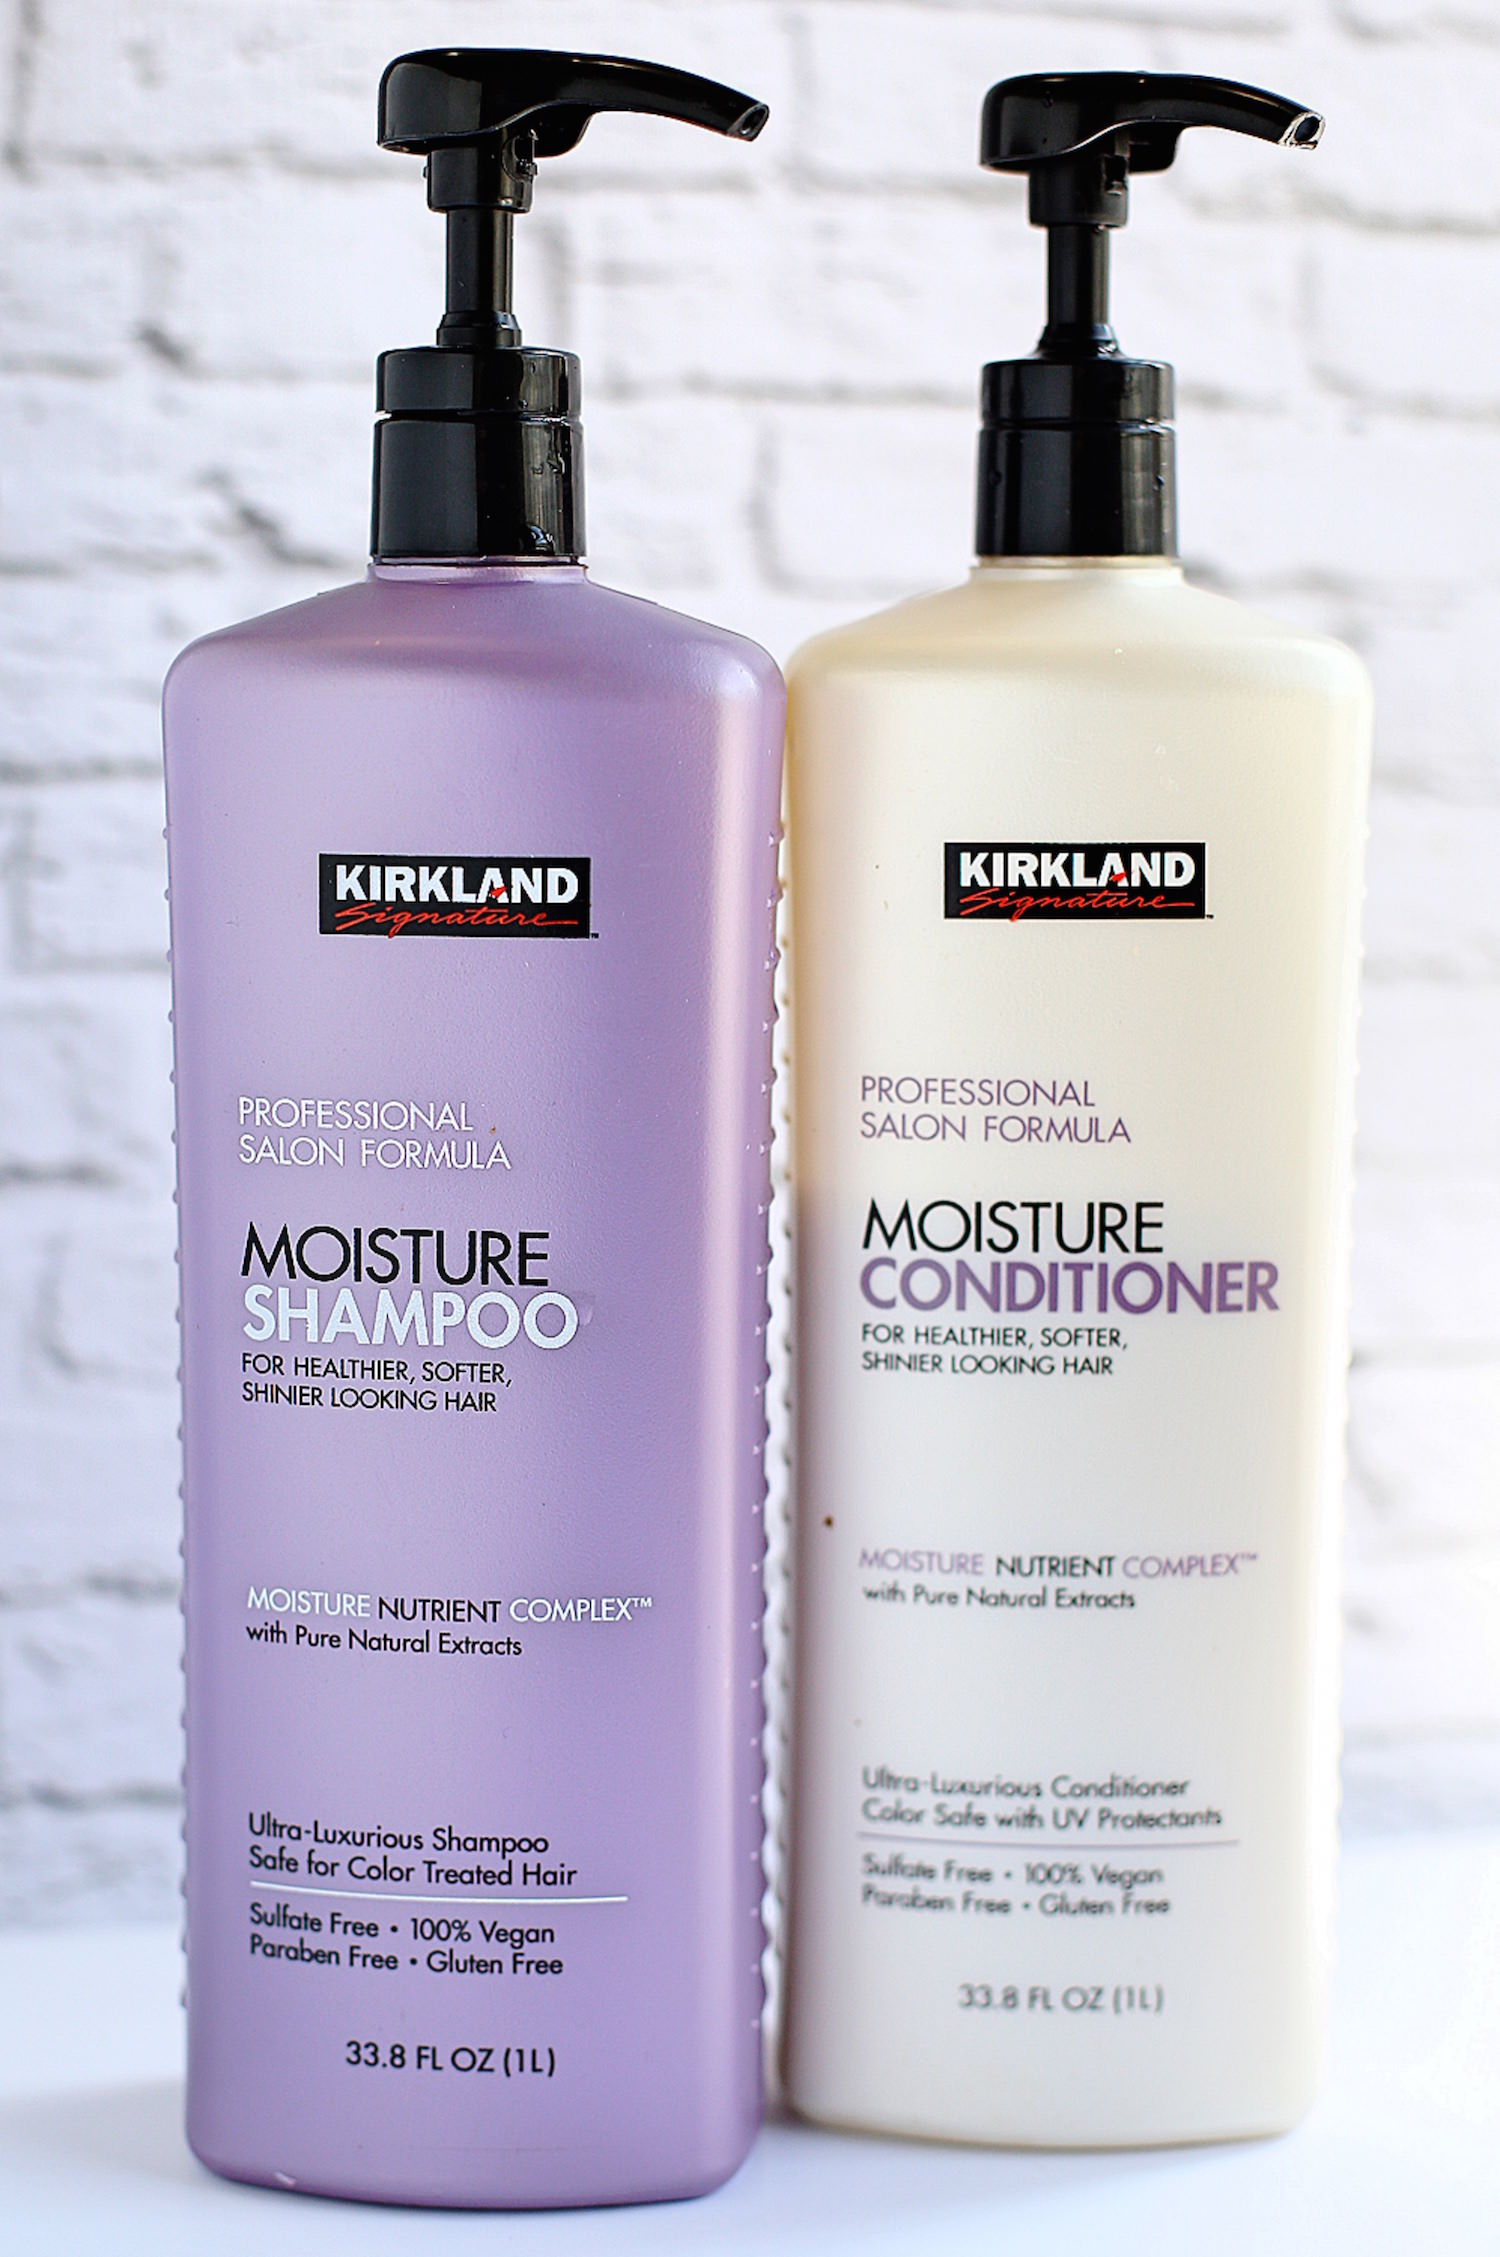 My 10 New Favorite Beauty Products - Kirkland Shampoo and Conditioner | TrufflesandTrends.com